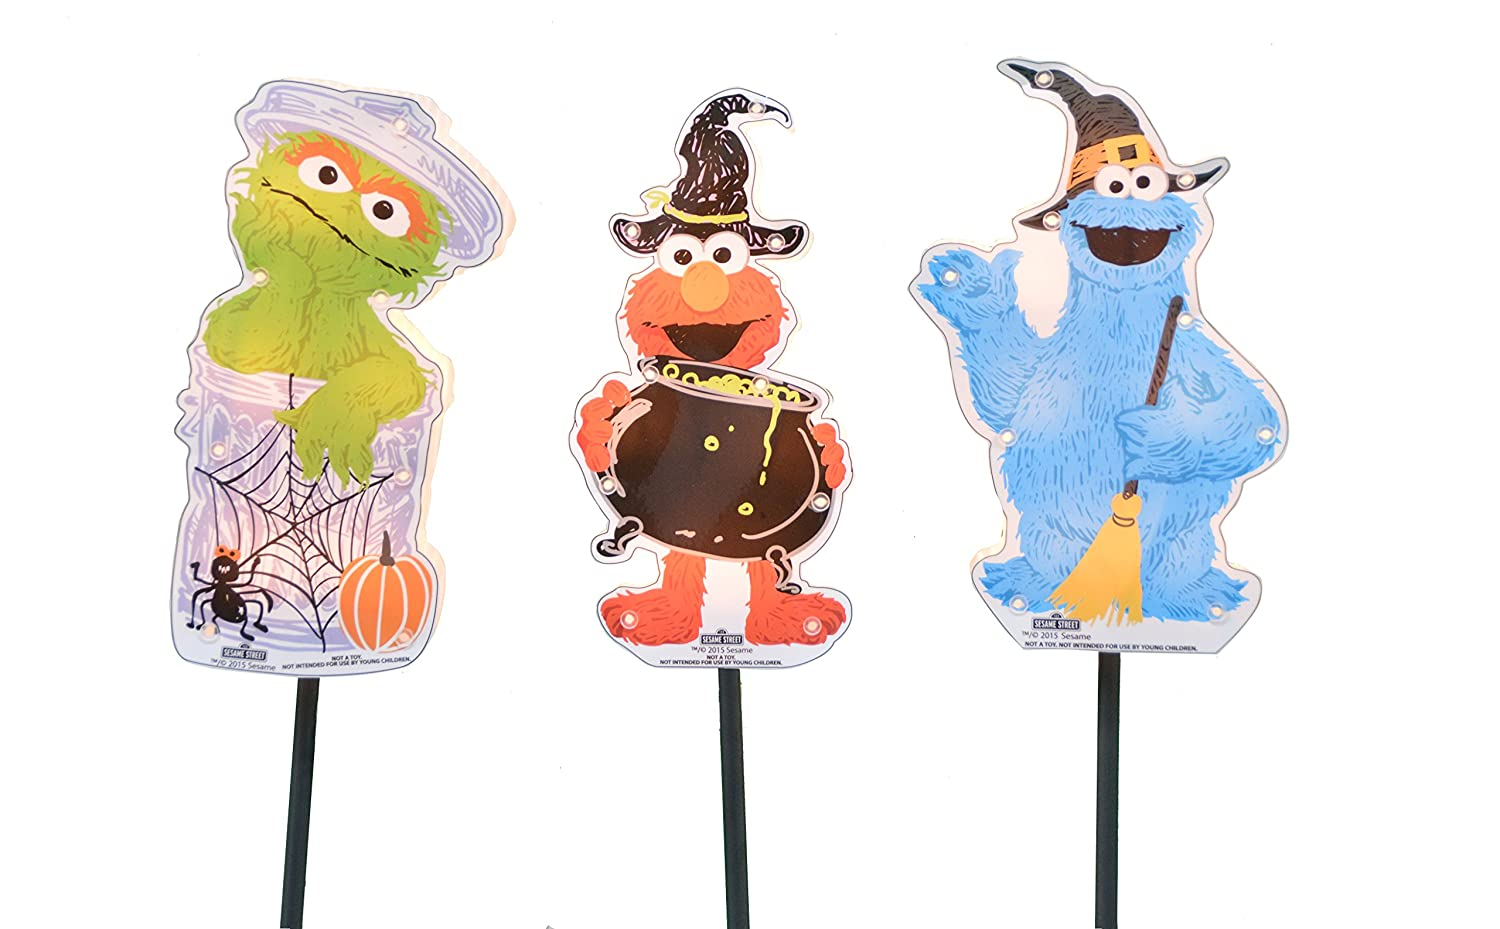 ProductWorks 8-Inch Pre-Lit Sesame Street Halloween Pathway Markers (Set of 3) 70116